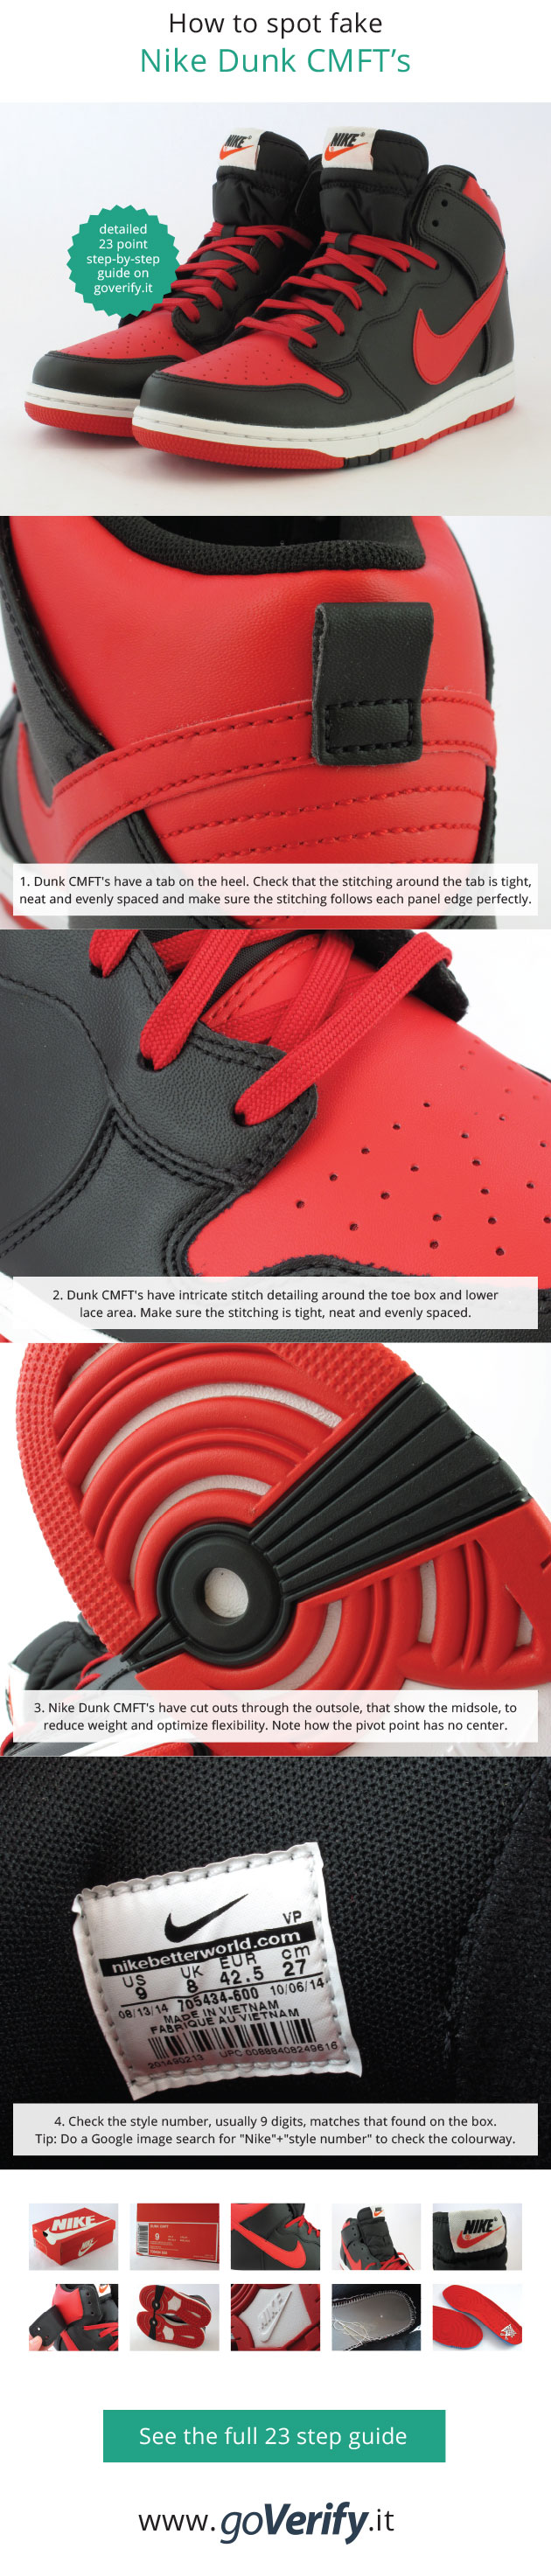 3d20bbd9d073 How to spot fake Nike Dunk CMFT s